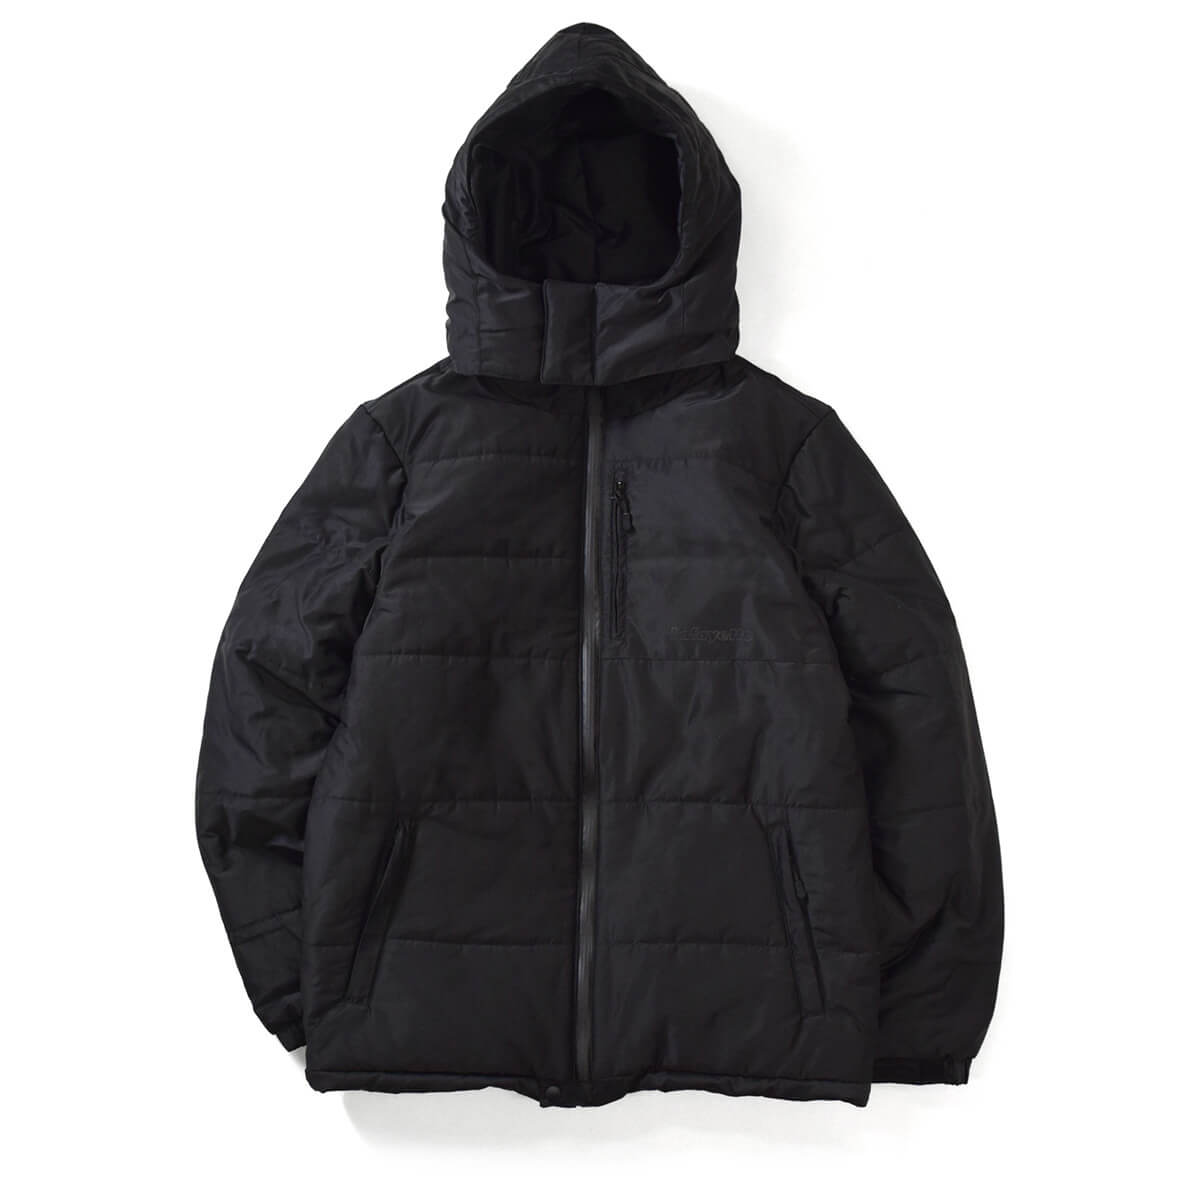 라파예트 패딩 자켓 ALL CITY POLYESTER FILL JACKET BLACK Lafayette